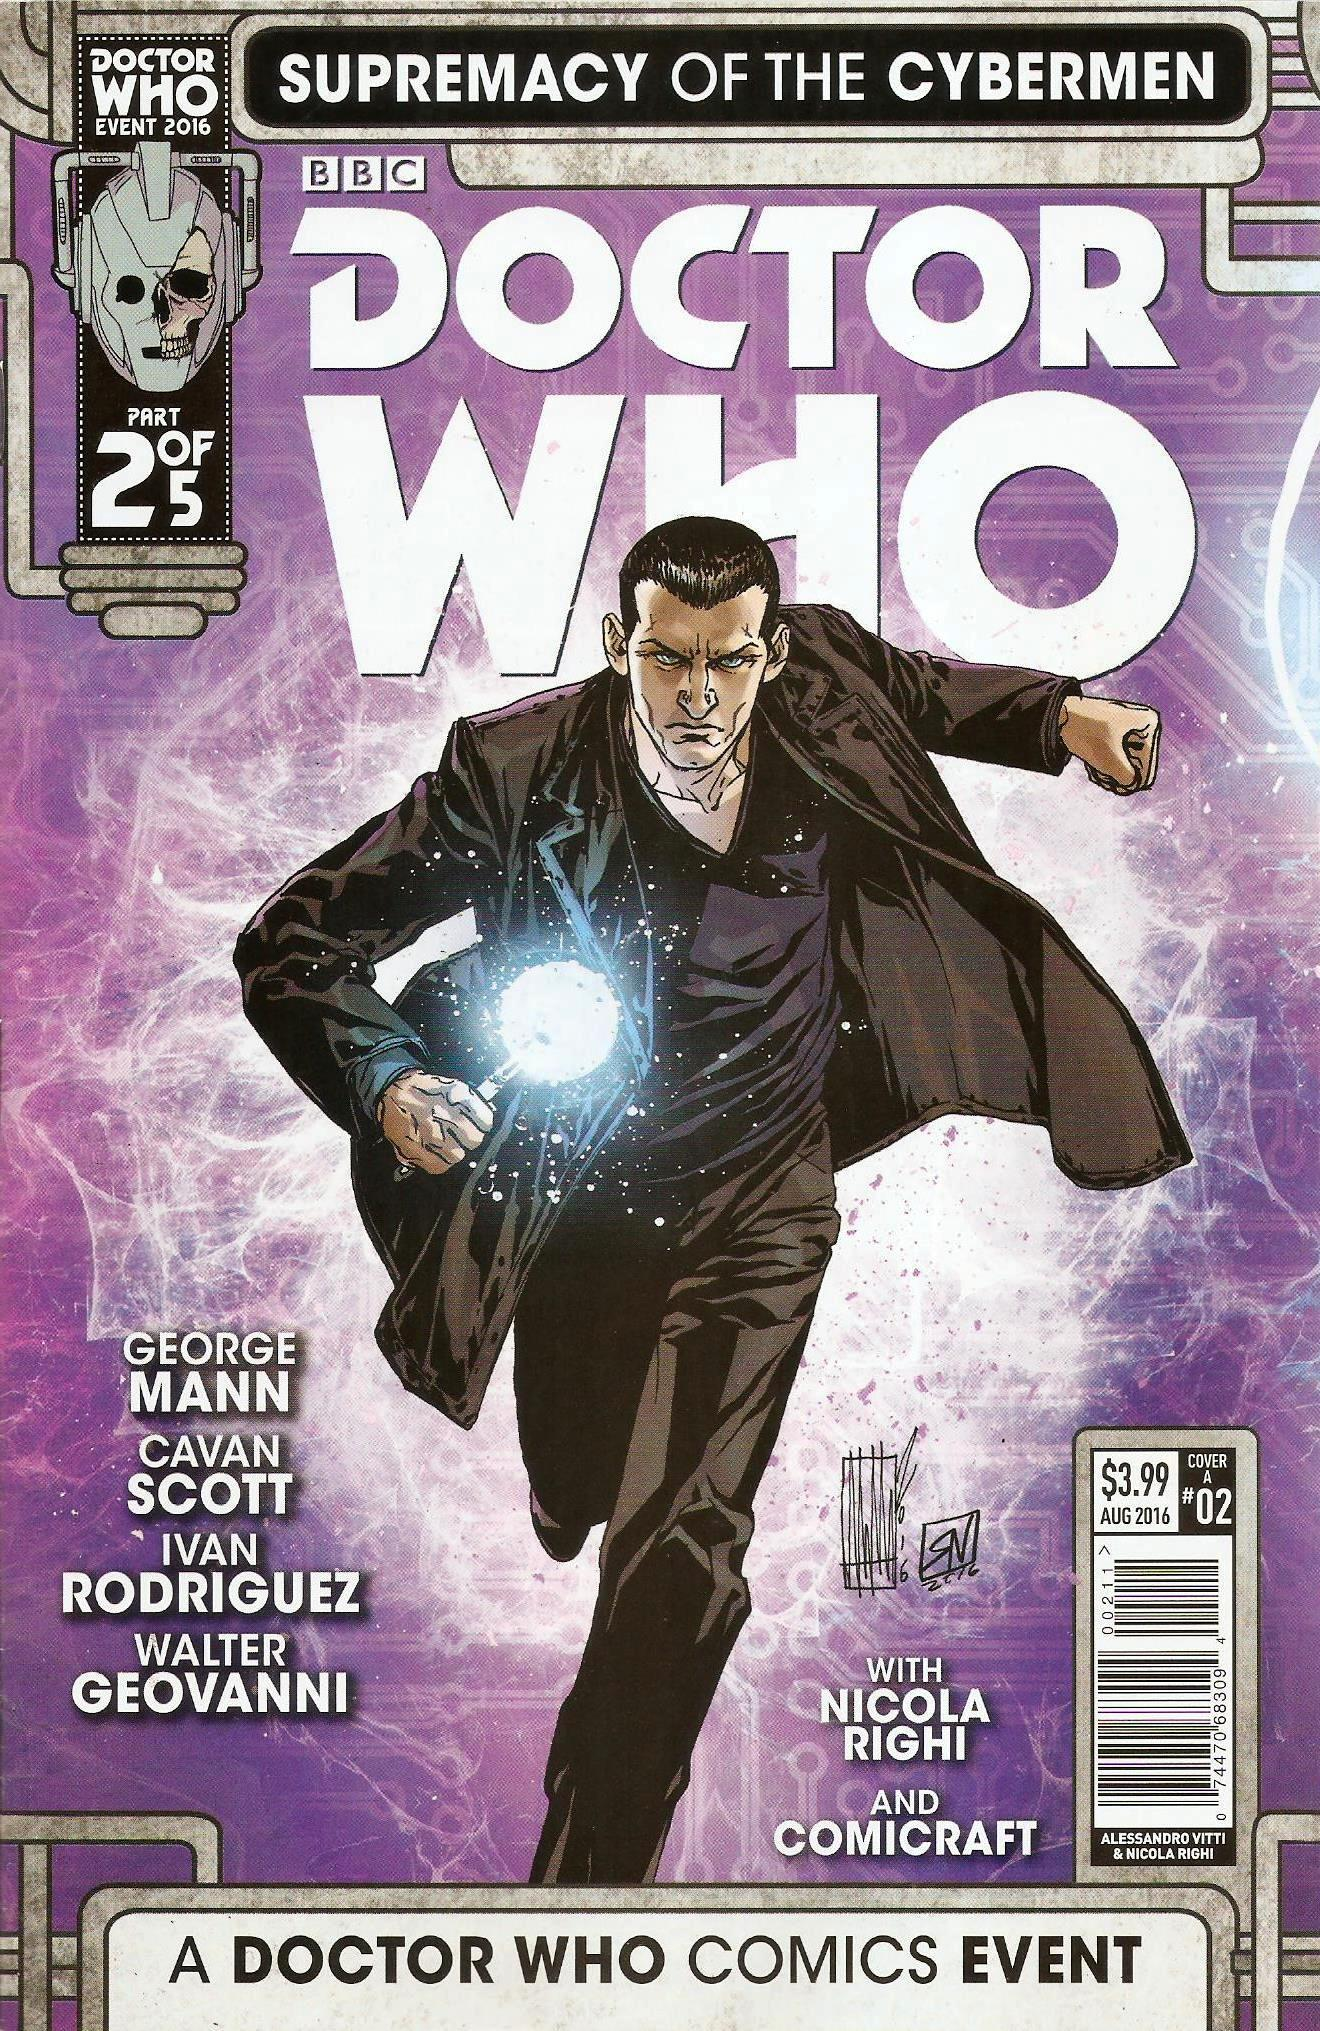 Supremacy of the cybermen issue 2a